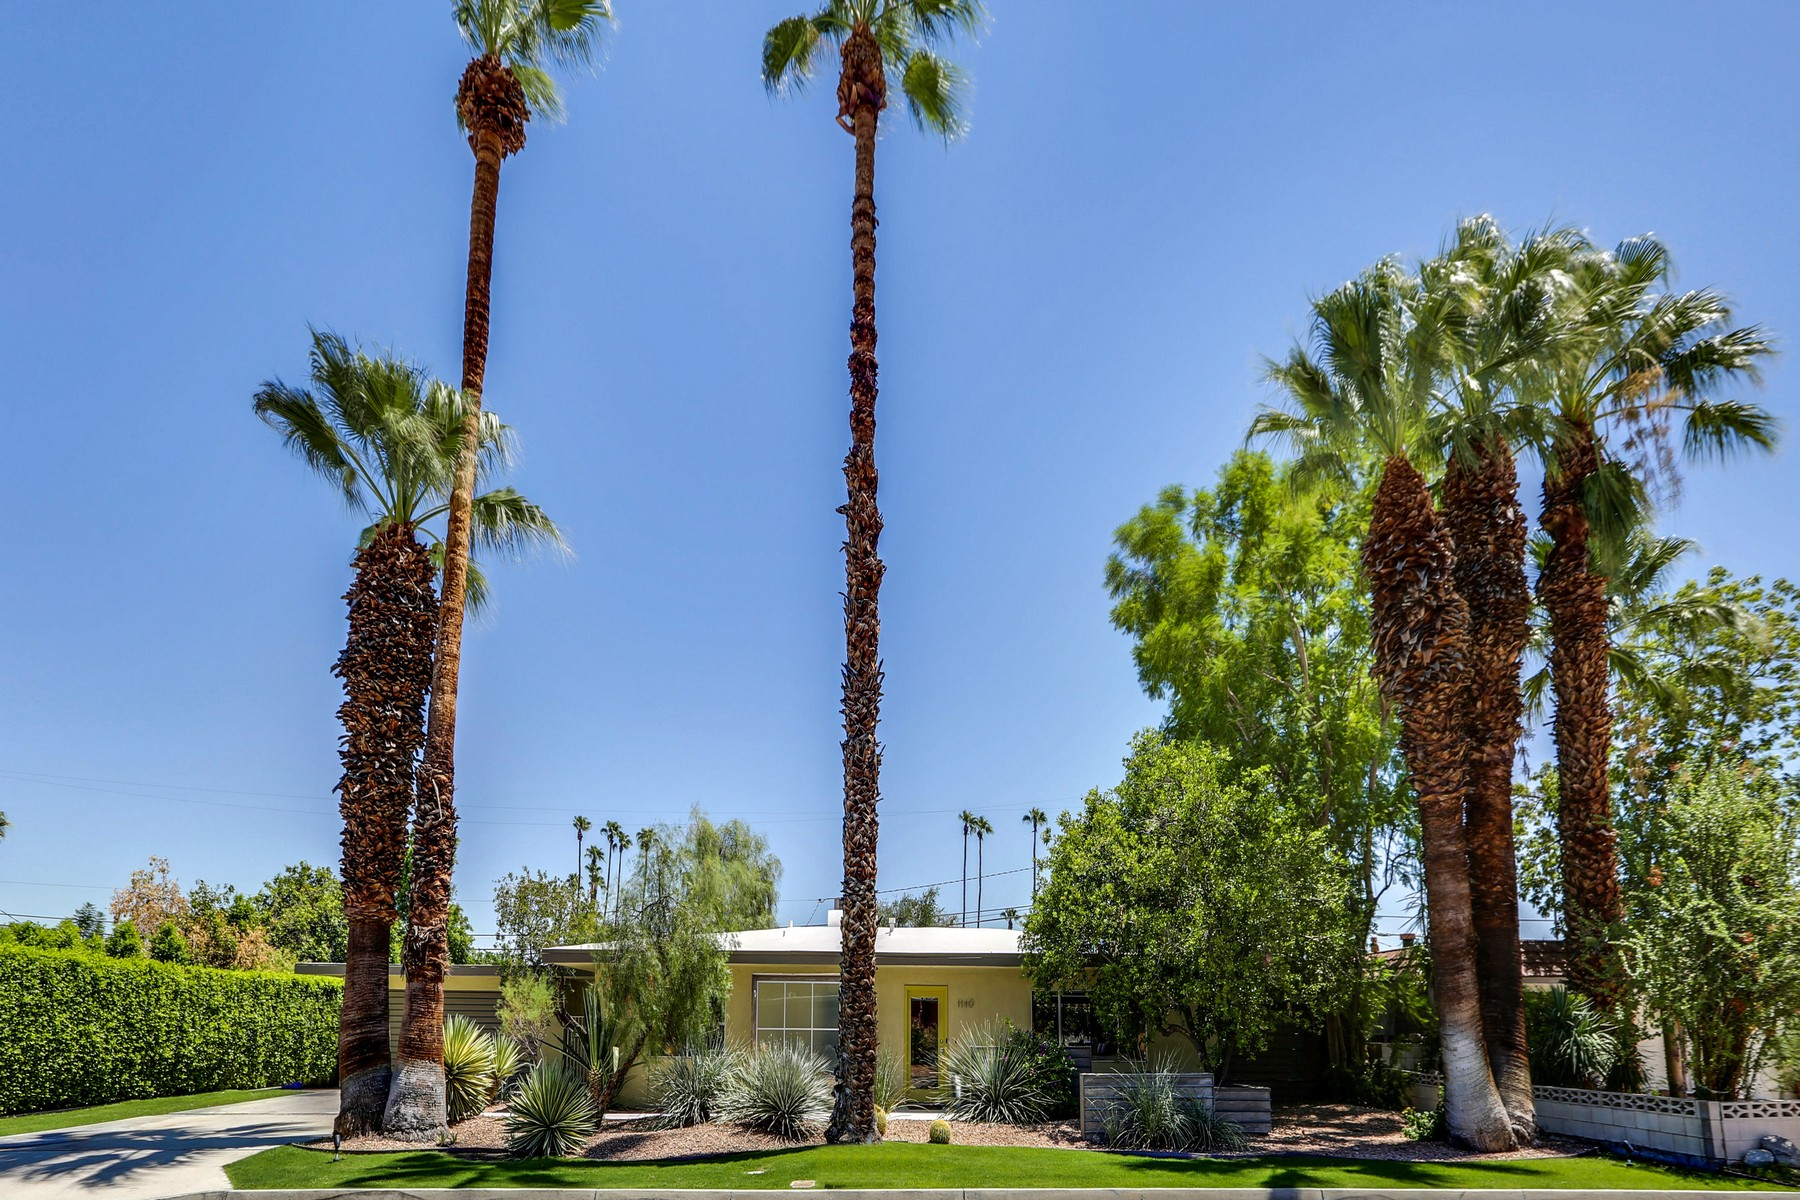 Single Family Home for Sale at 1140 Calle Marcus Palm Springs, California 92264 United States